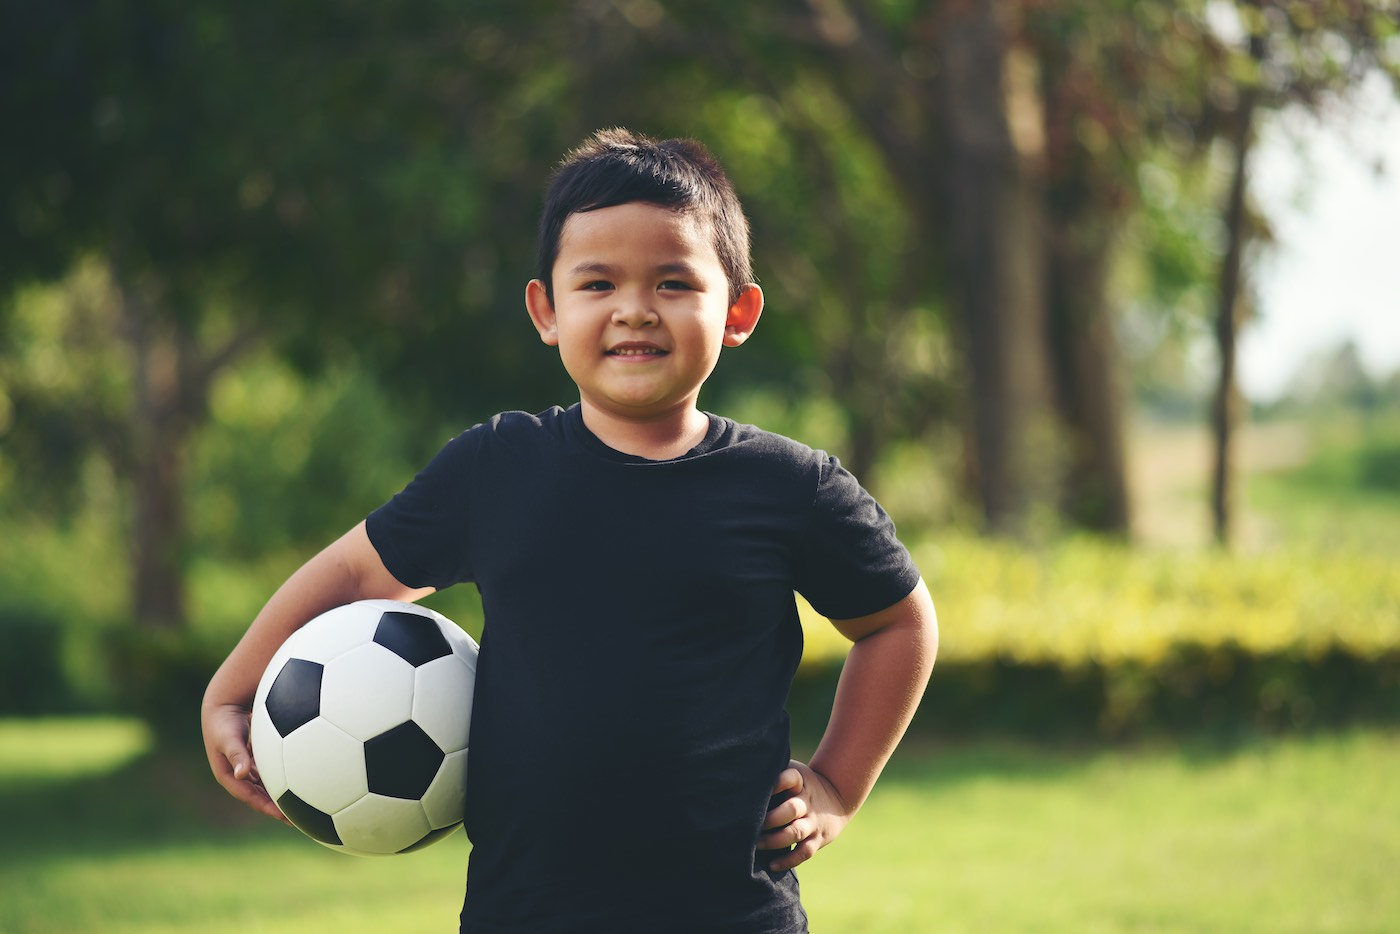 Professional Soccer Player Child 1